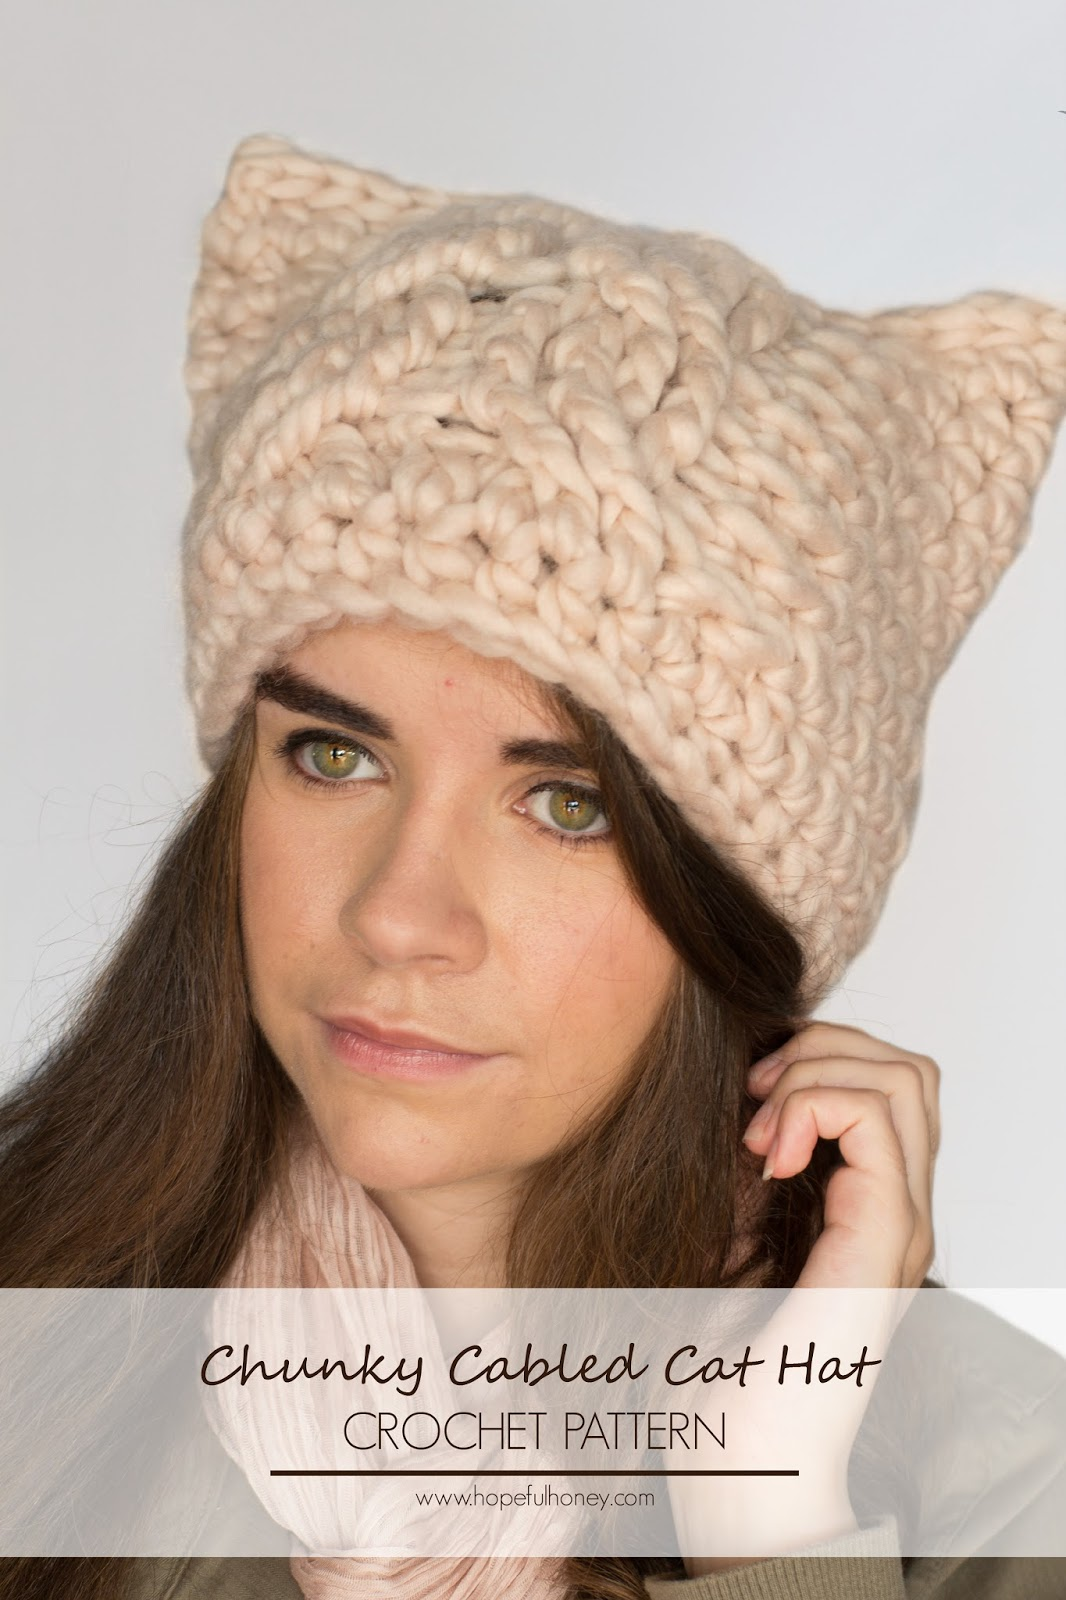 Crochet Kitty Cat Hat Pattern : Hopeful Honey Craft, Crochet, Create: Chunky Cabled Cat ...